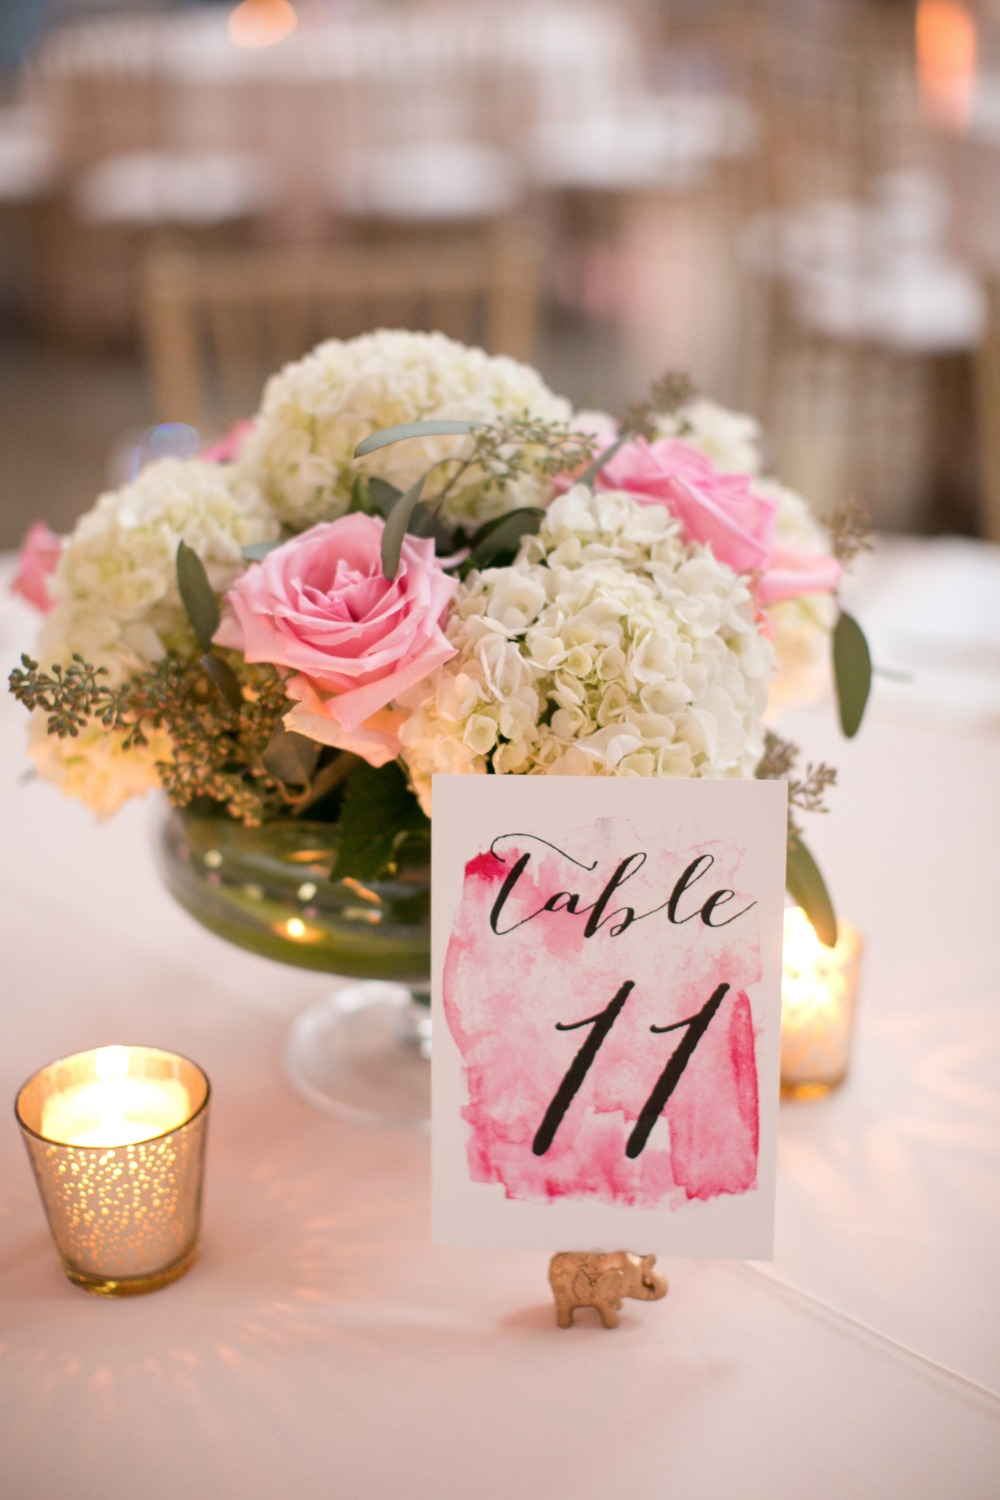 Water color table number